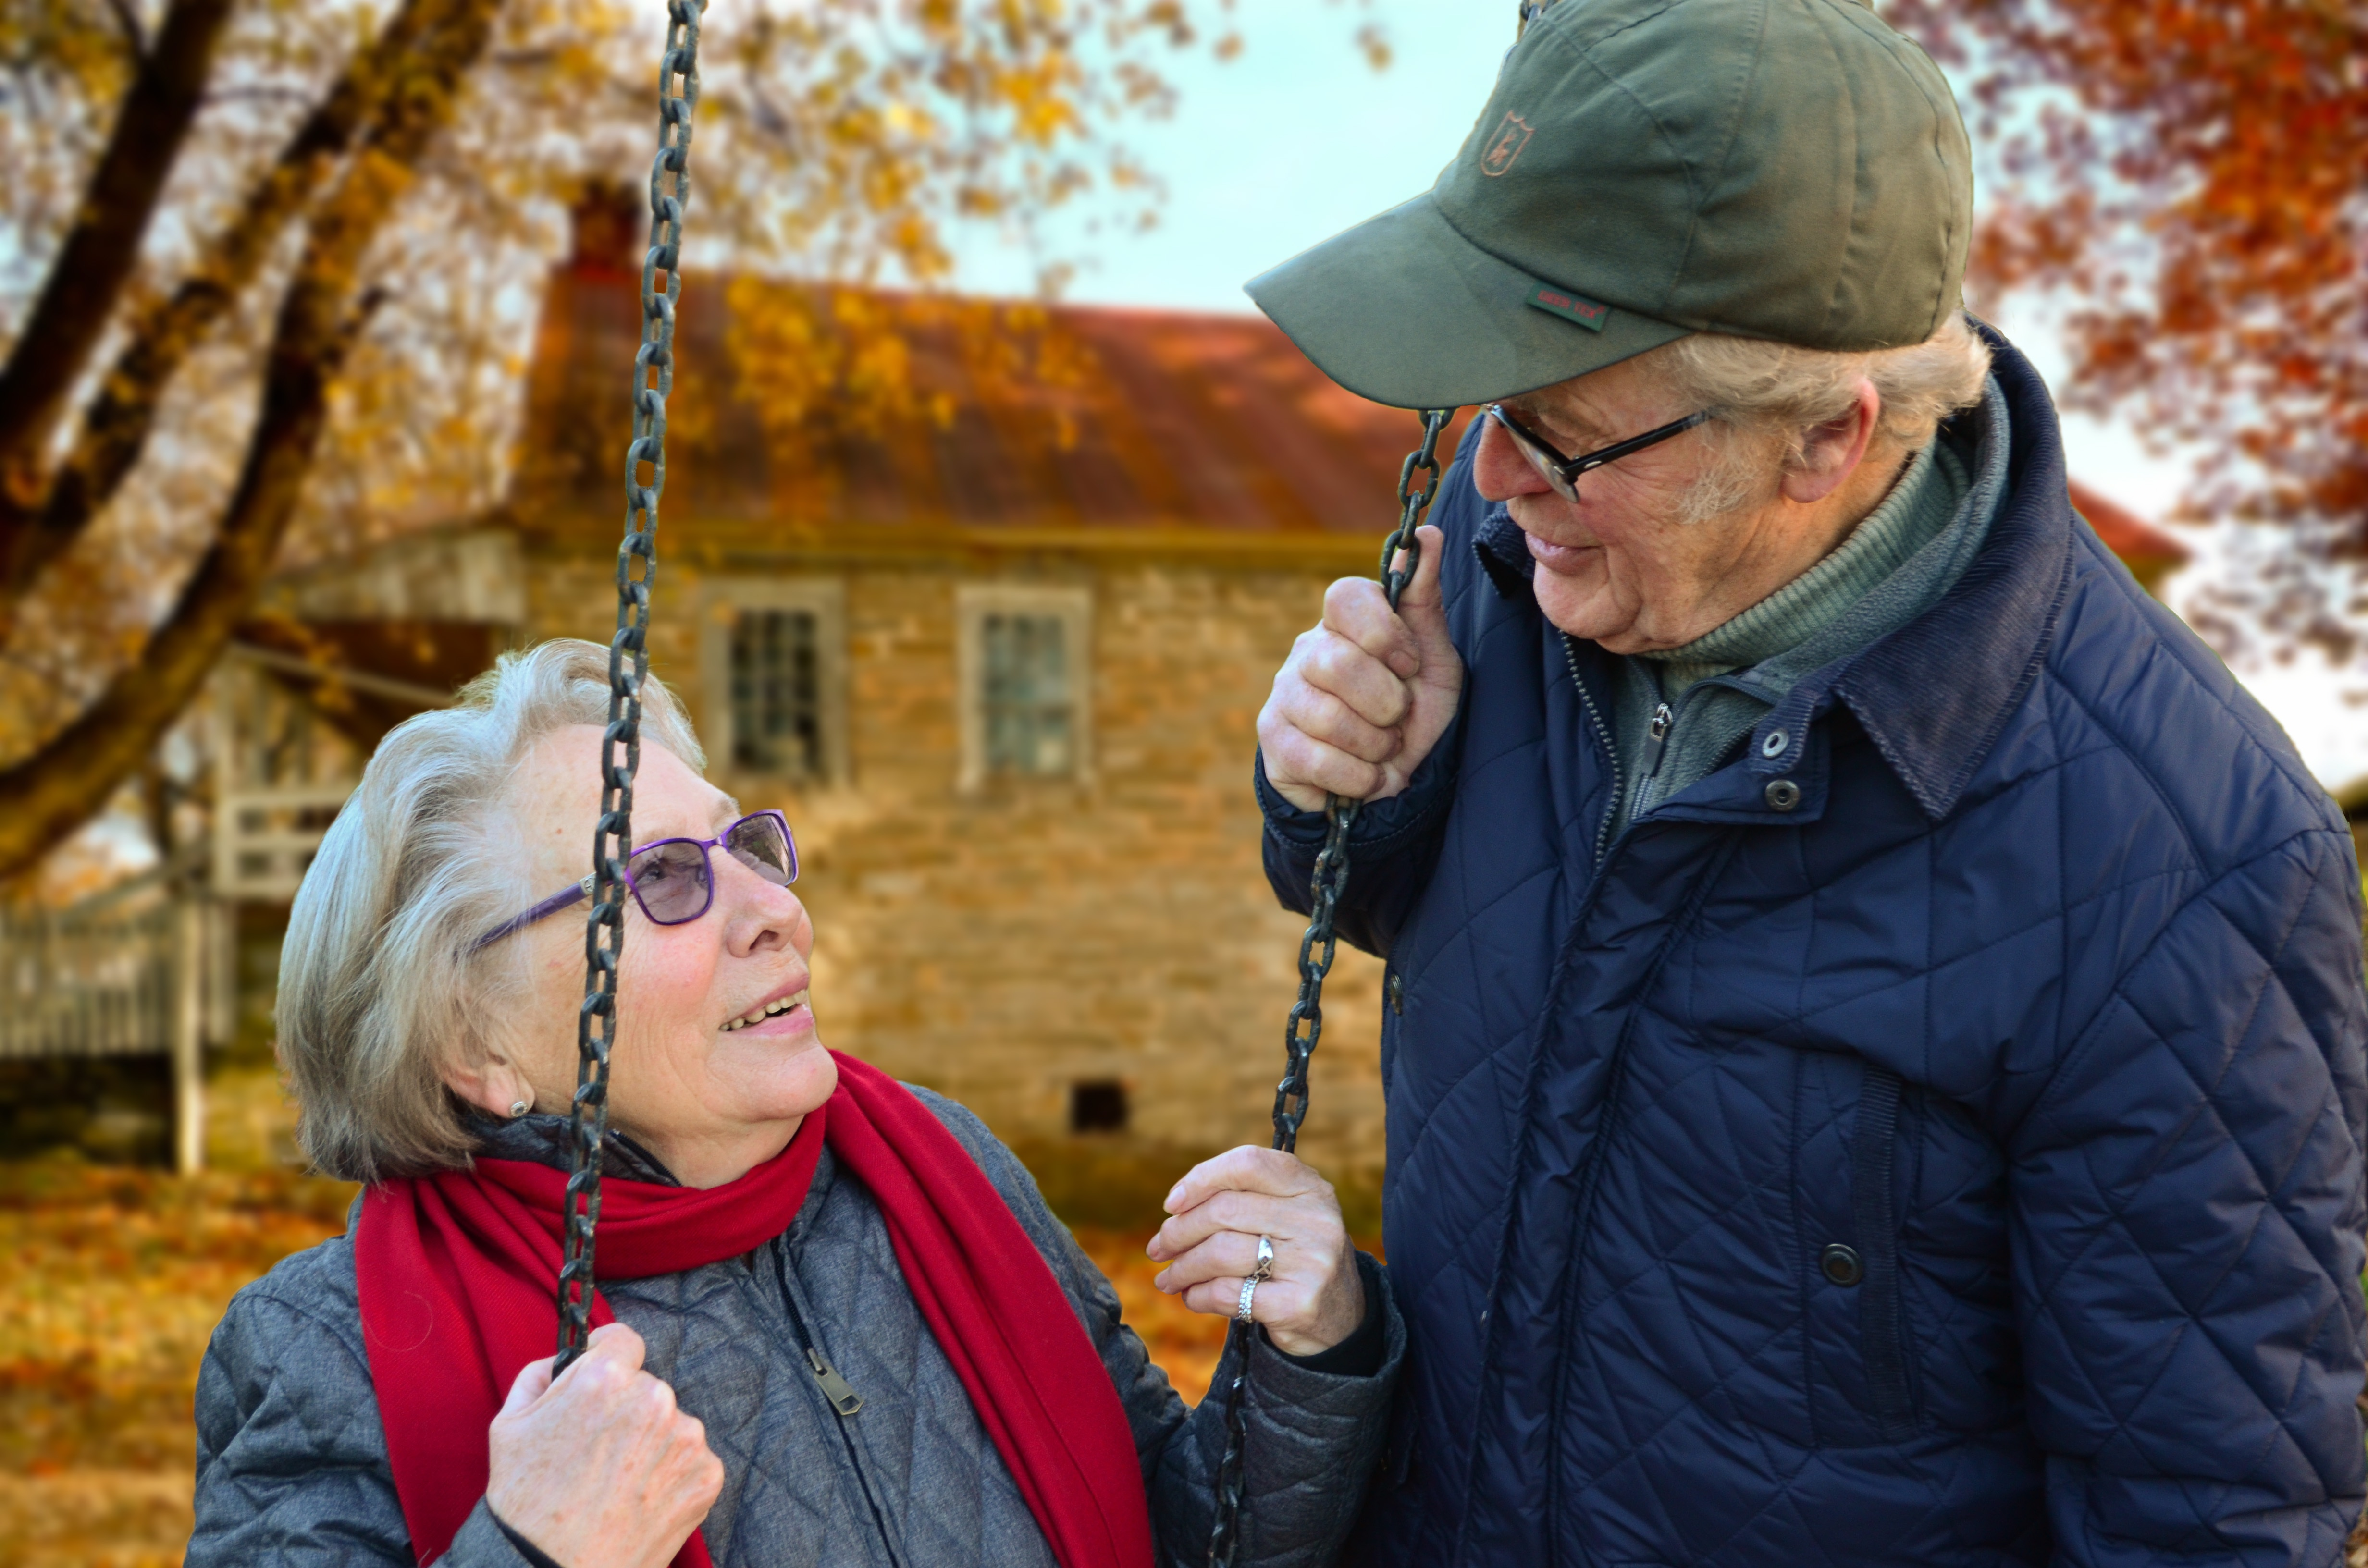 old-people-couple-together-connected_oxygensolutions